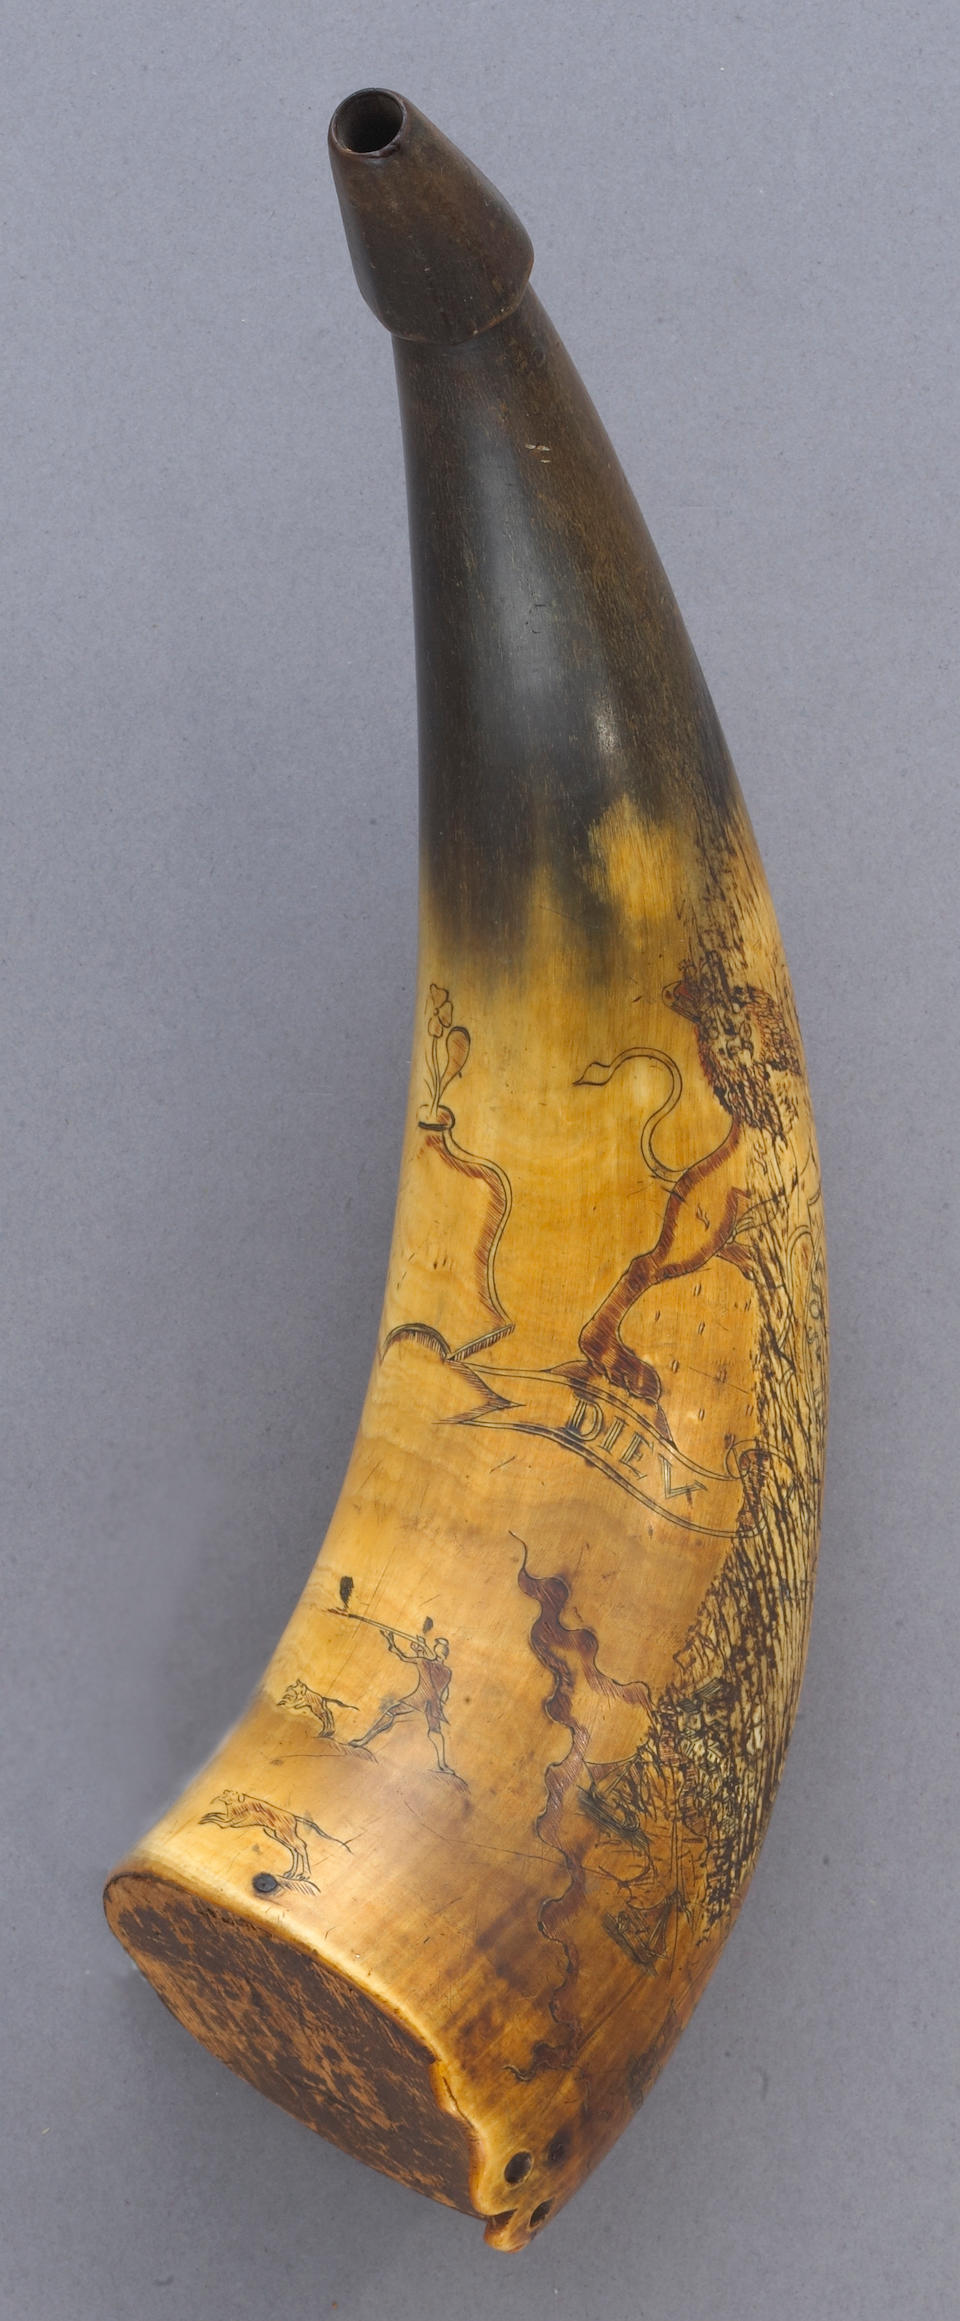 A fine incised French and Indian War era powder horn